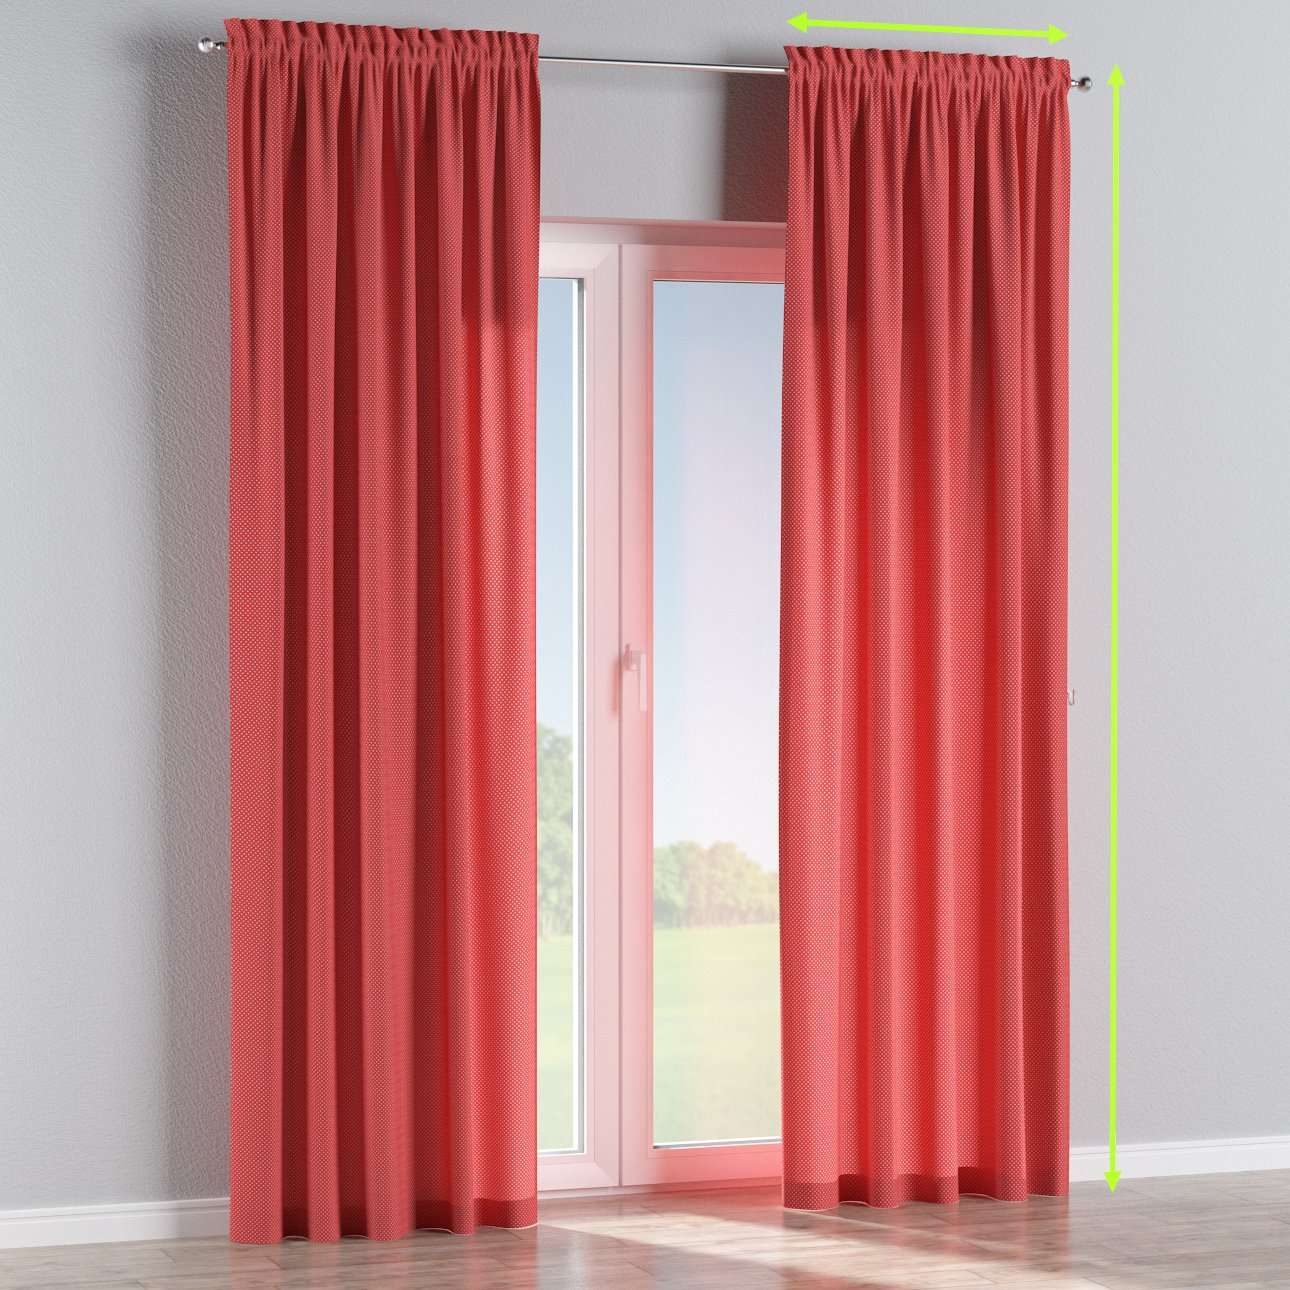 Slot and frill lined curtains in collection Ashley, fabric: 137-50